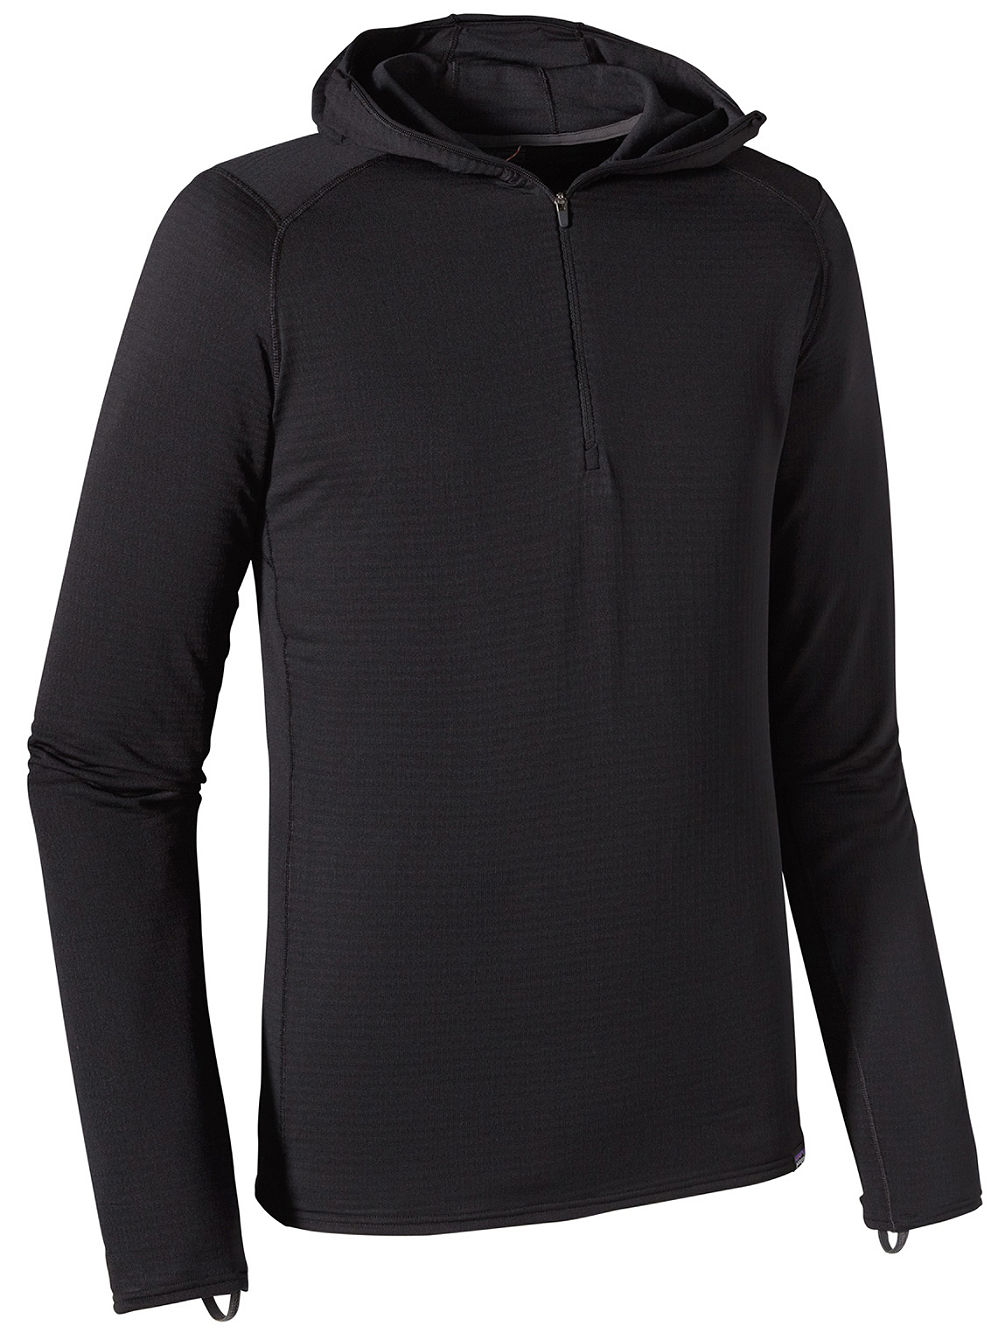 Cap Tw Zip Neck Hooded Tech Tee LS